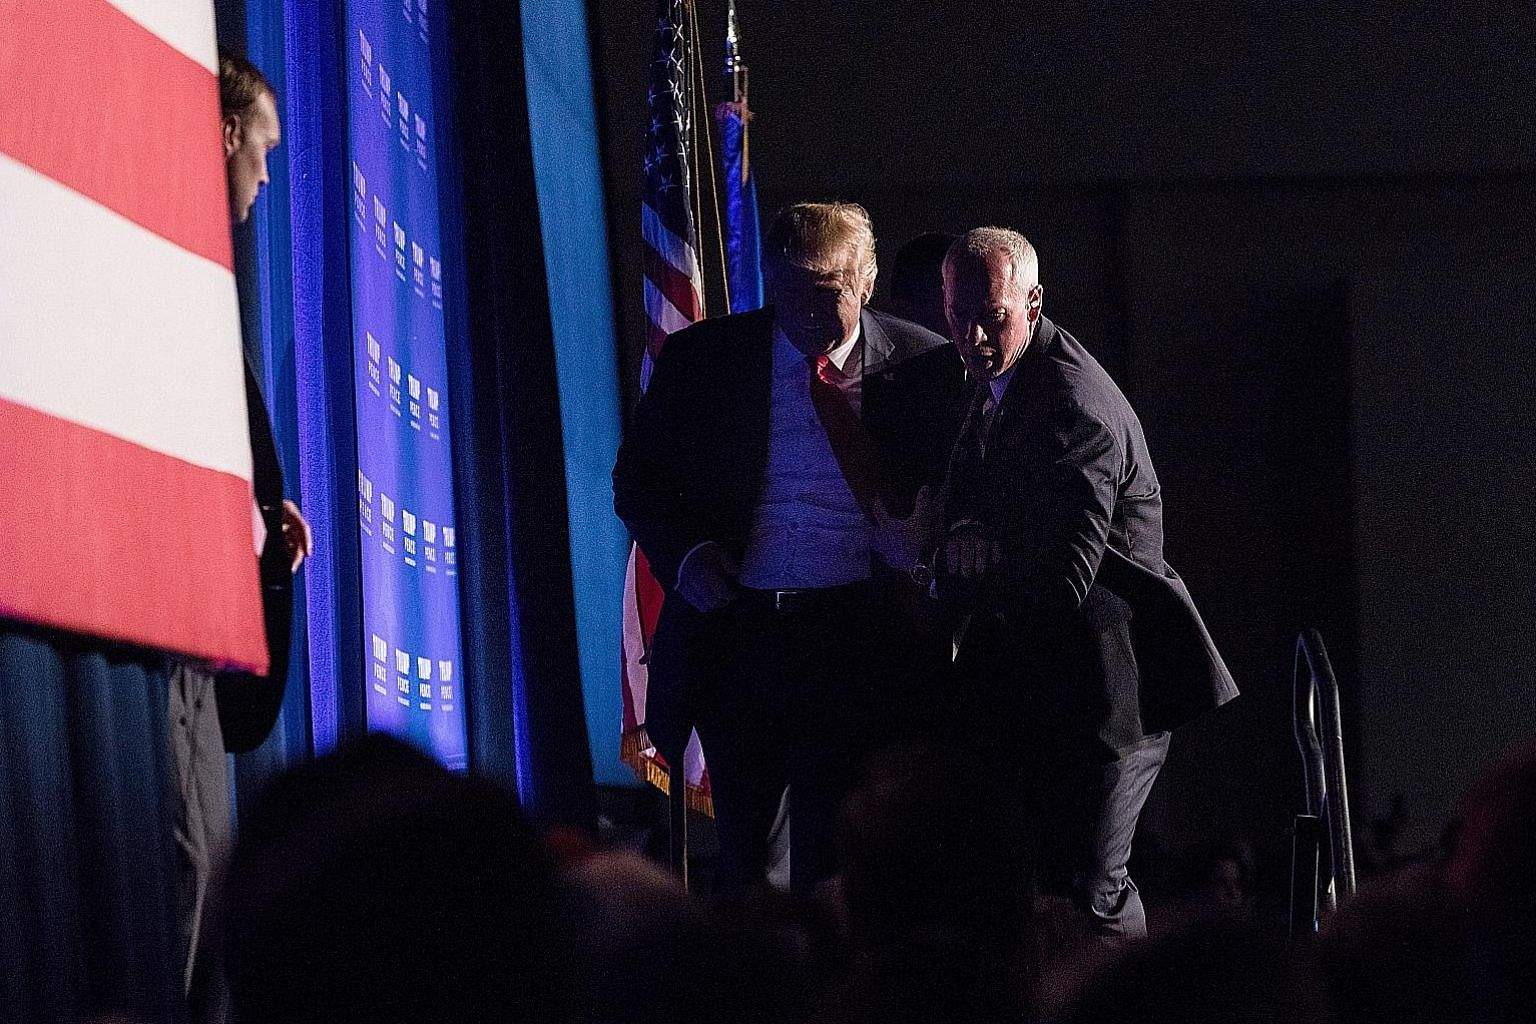 """Mr Trump being rushed off the stage by Secret Service agents after someone in the crowd yelled """"gun"""" at his rally in Reno, Nevada, on Saturday. No weapon was found on the man thought to be a threat to him, and the Republican candidate returned minute"""